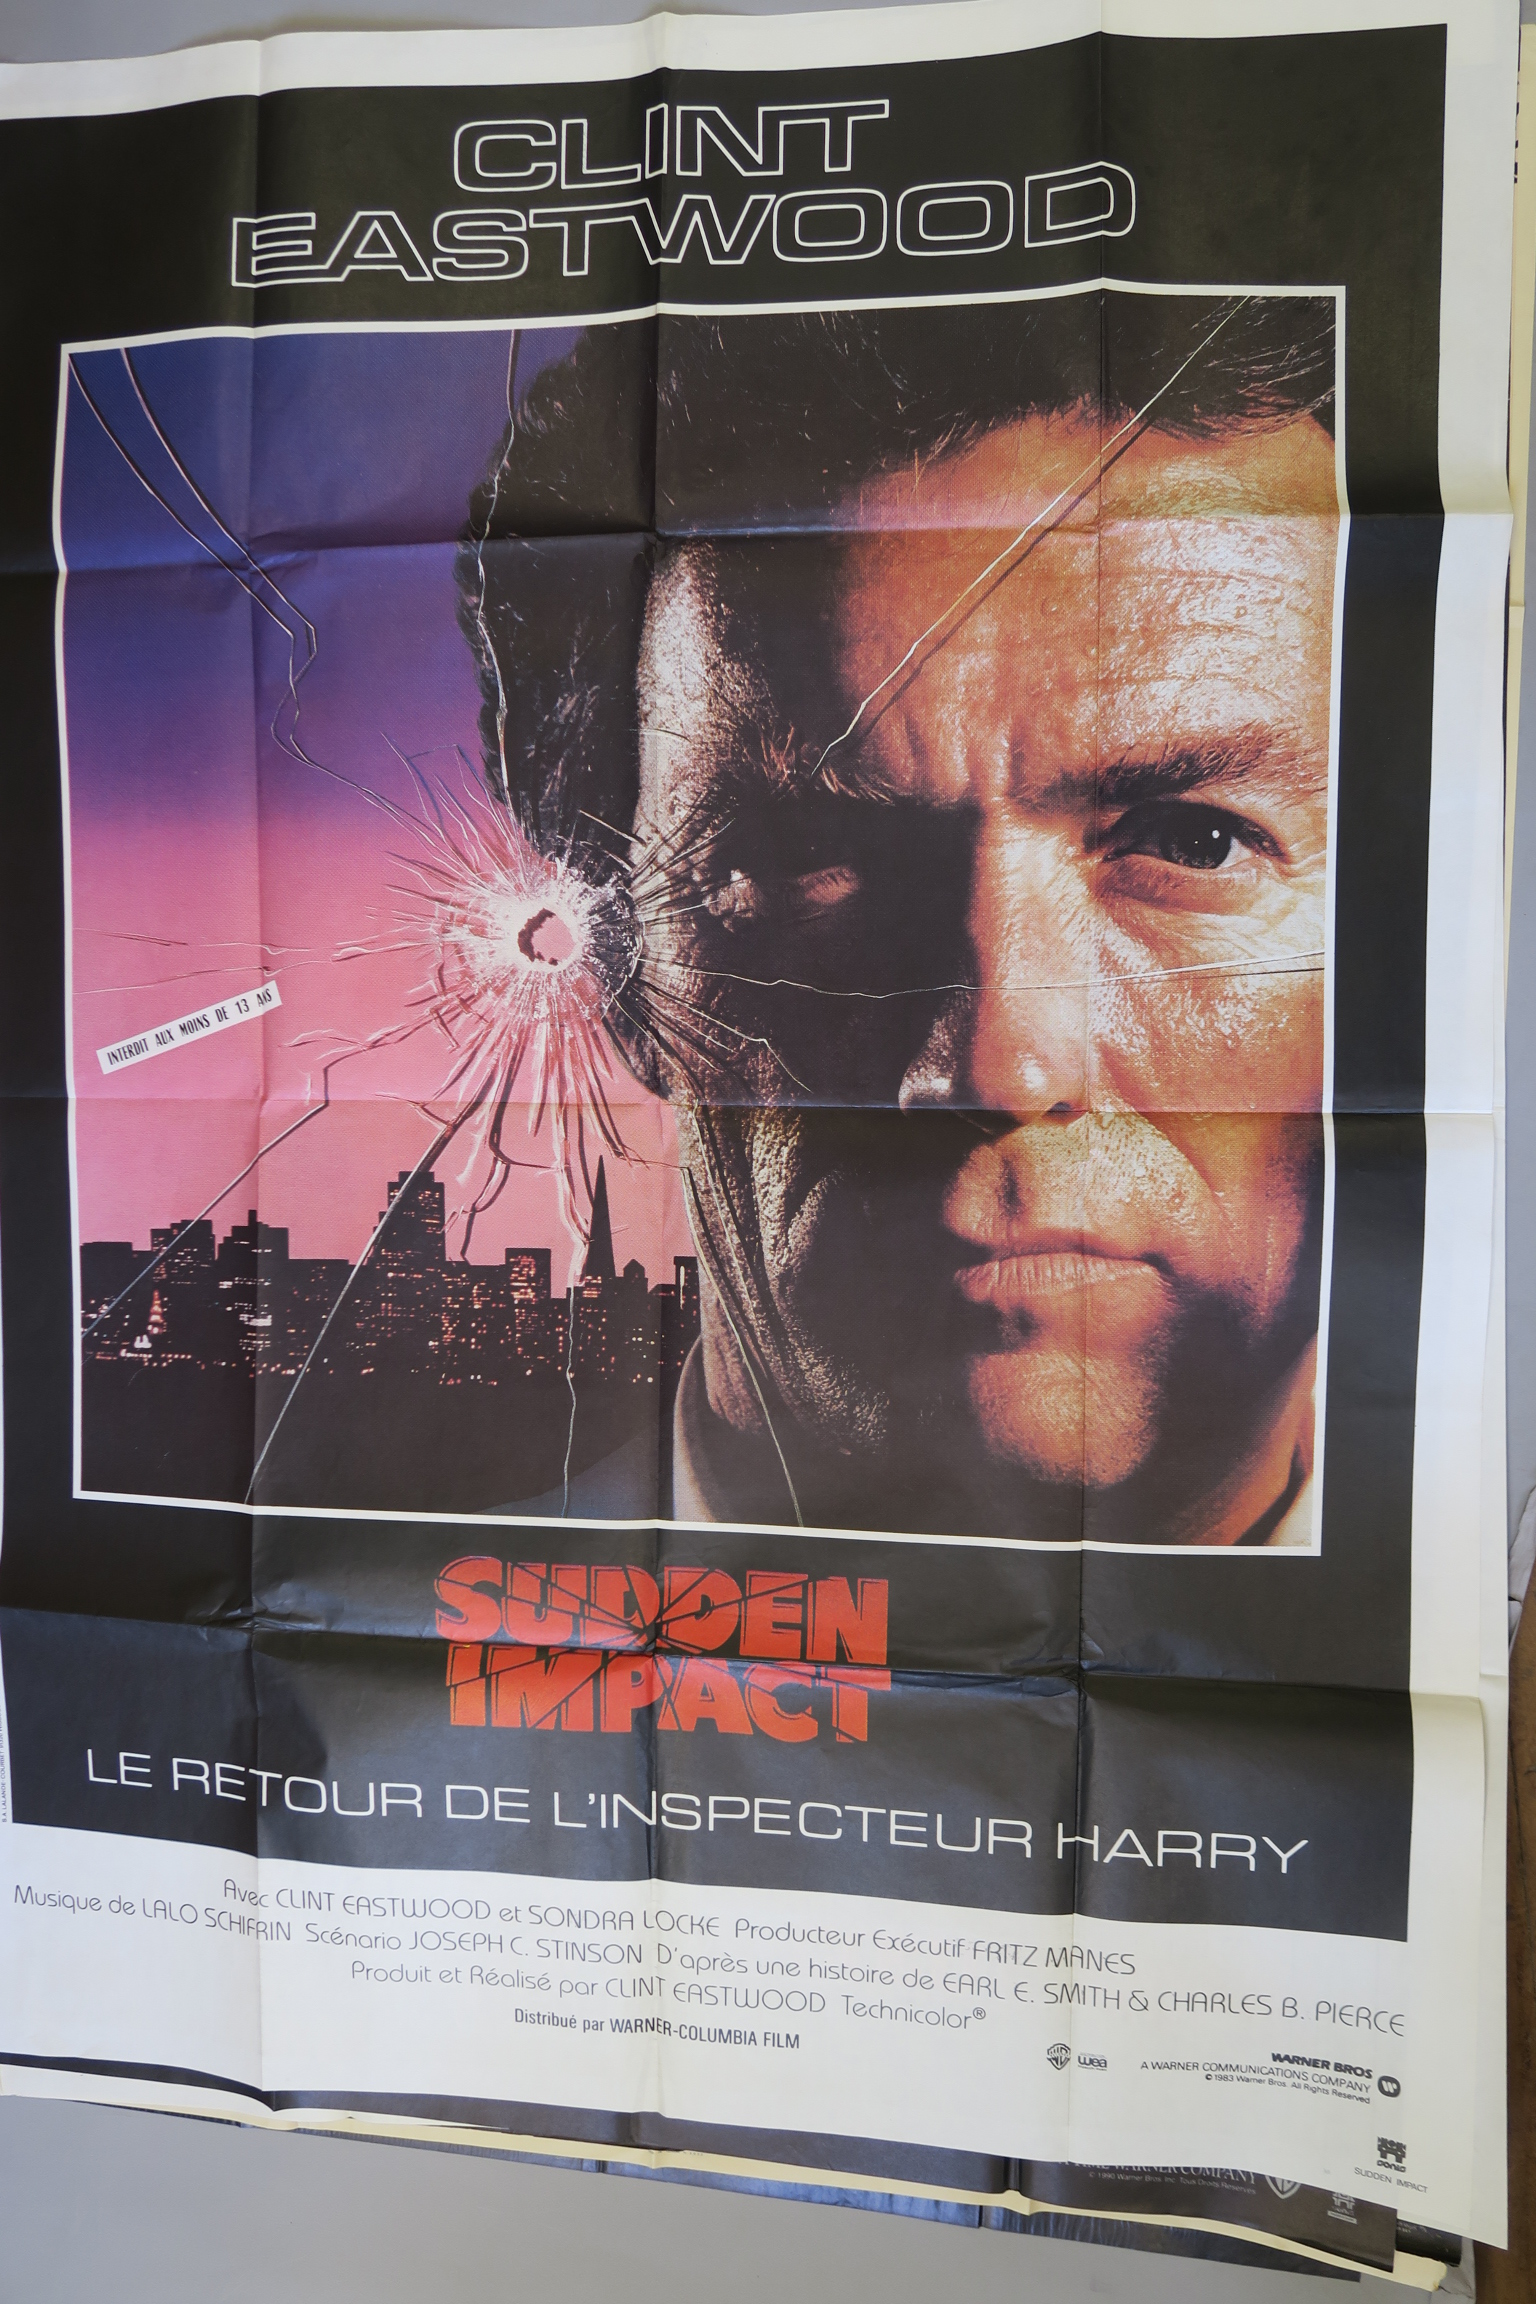 Lot 38 - 15 French Grande film posters inc David Lynch Twin Peaks Fire Walk with me (55 x 39 inch) x2 (style